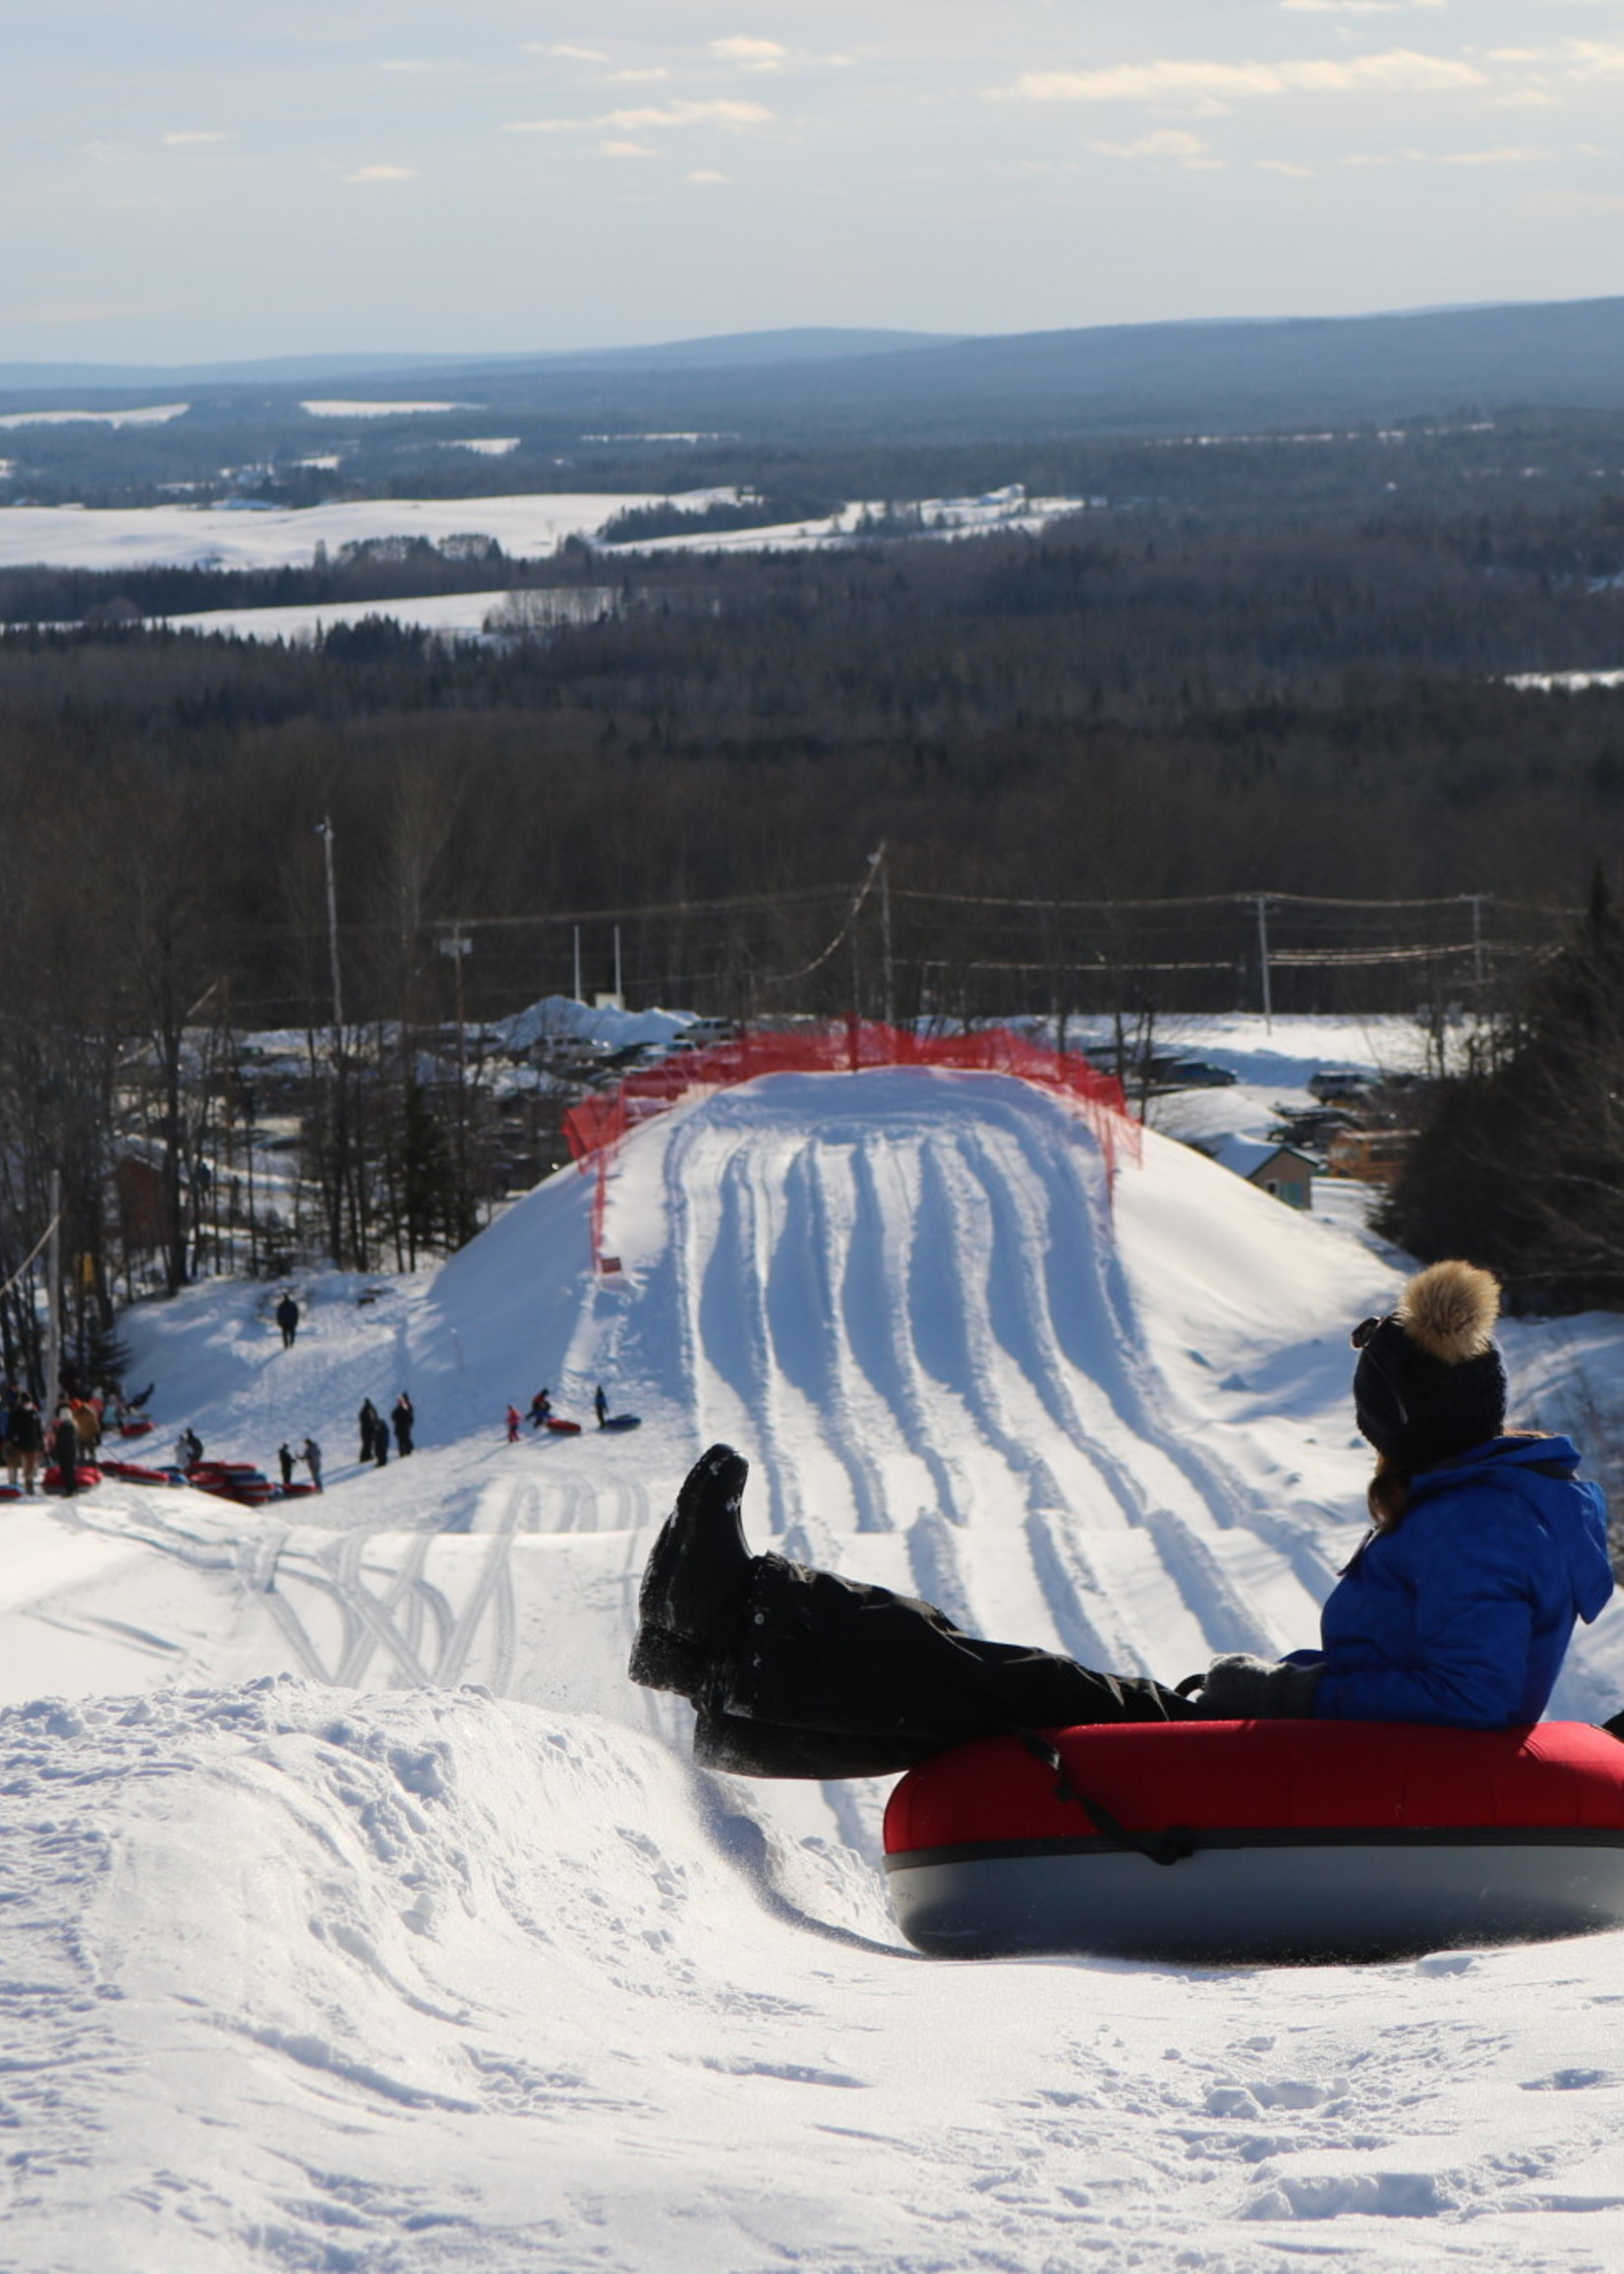 2 Hour Tubing Day Pass (11:30a - 1:30p)